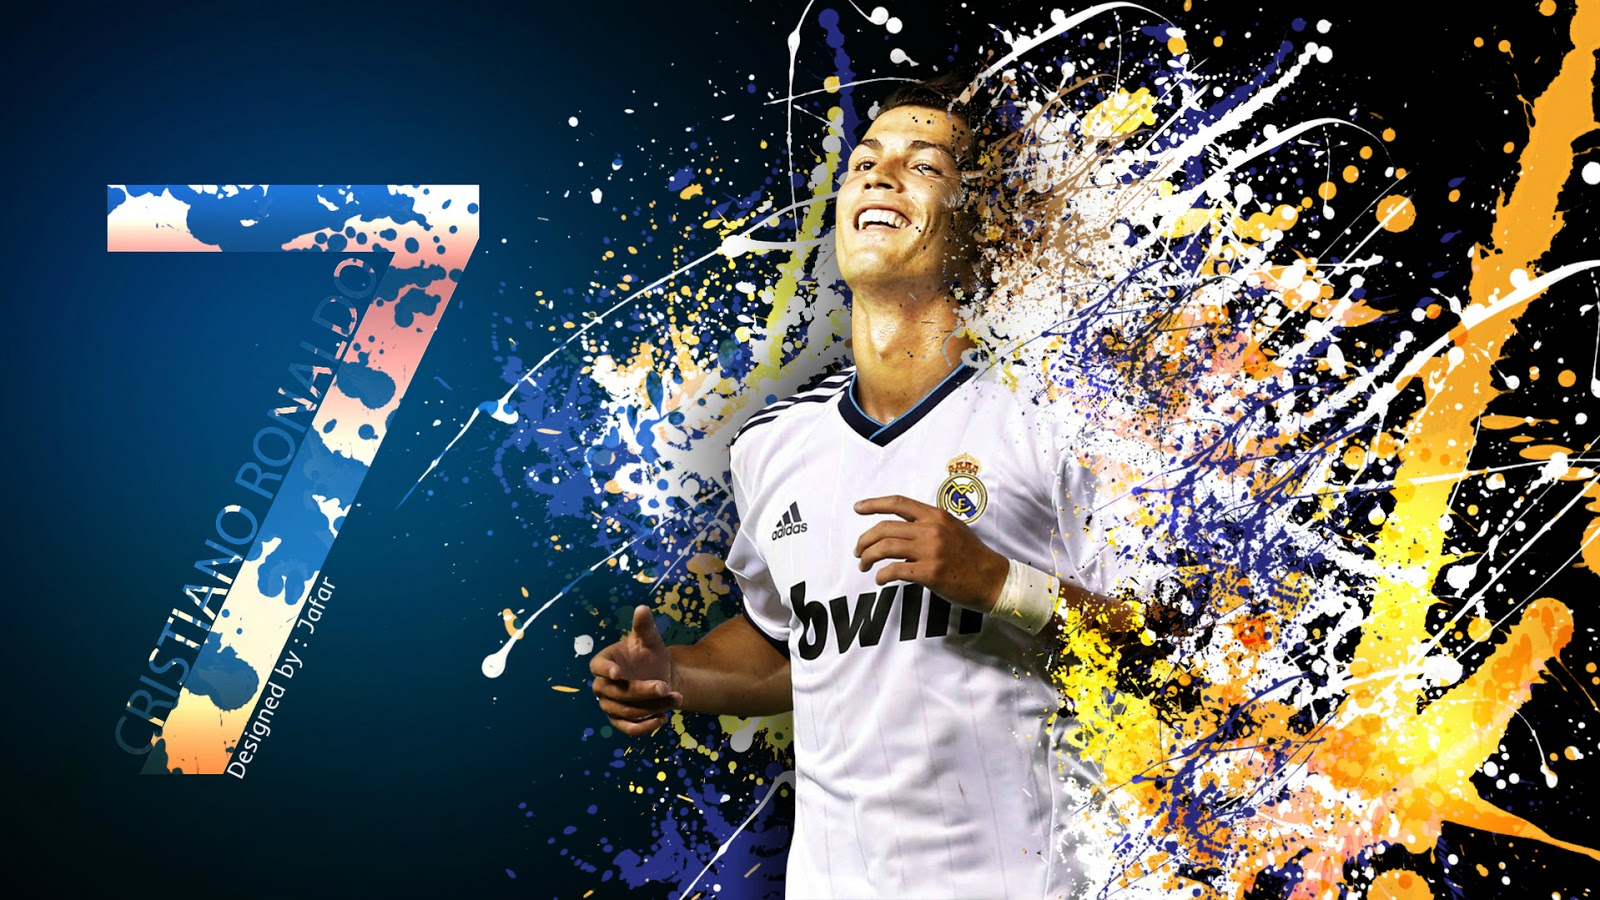 real madrid new hd wallpapers New collection of cr7 wallpapers 2015 1600x900